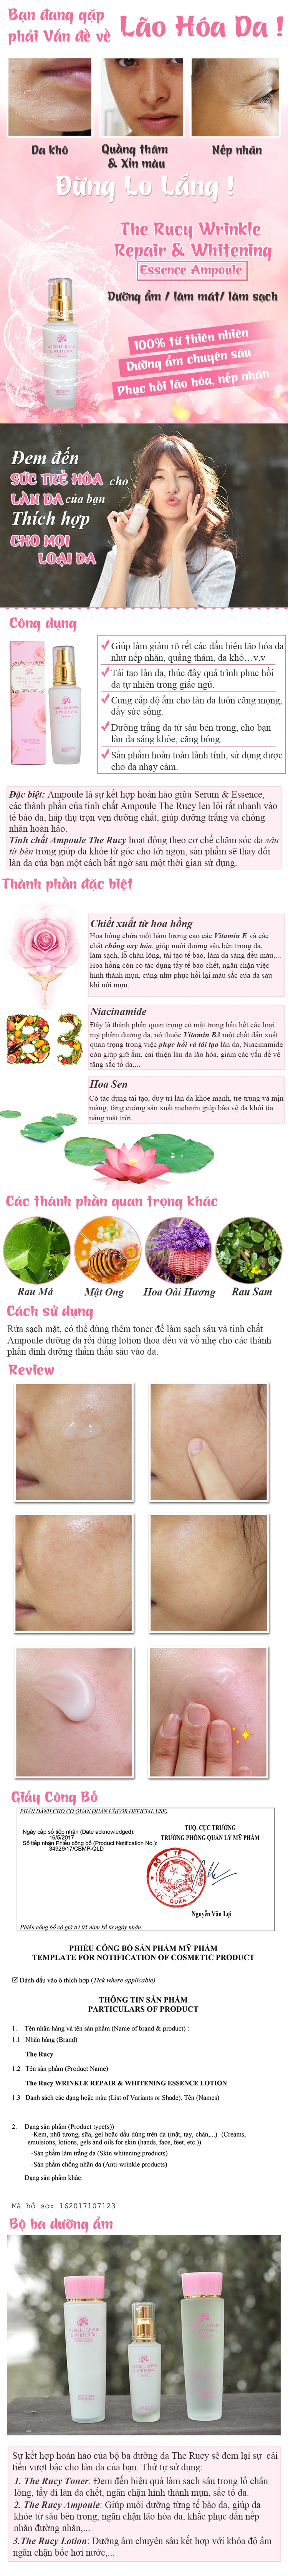 Tinh Chất The Rucy Wrinkle Repair & Whitening Ampoule LK-AW (50ml)